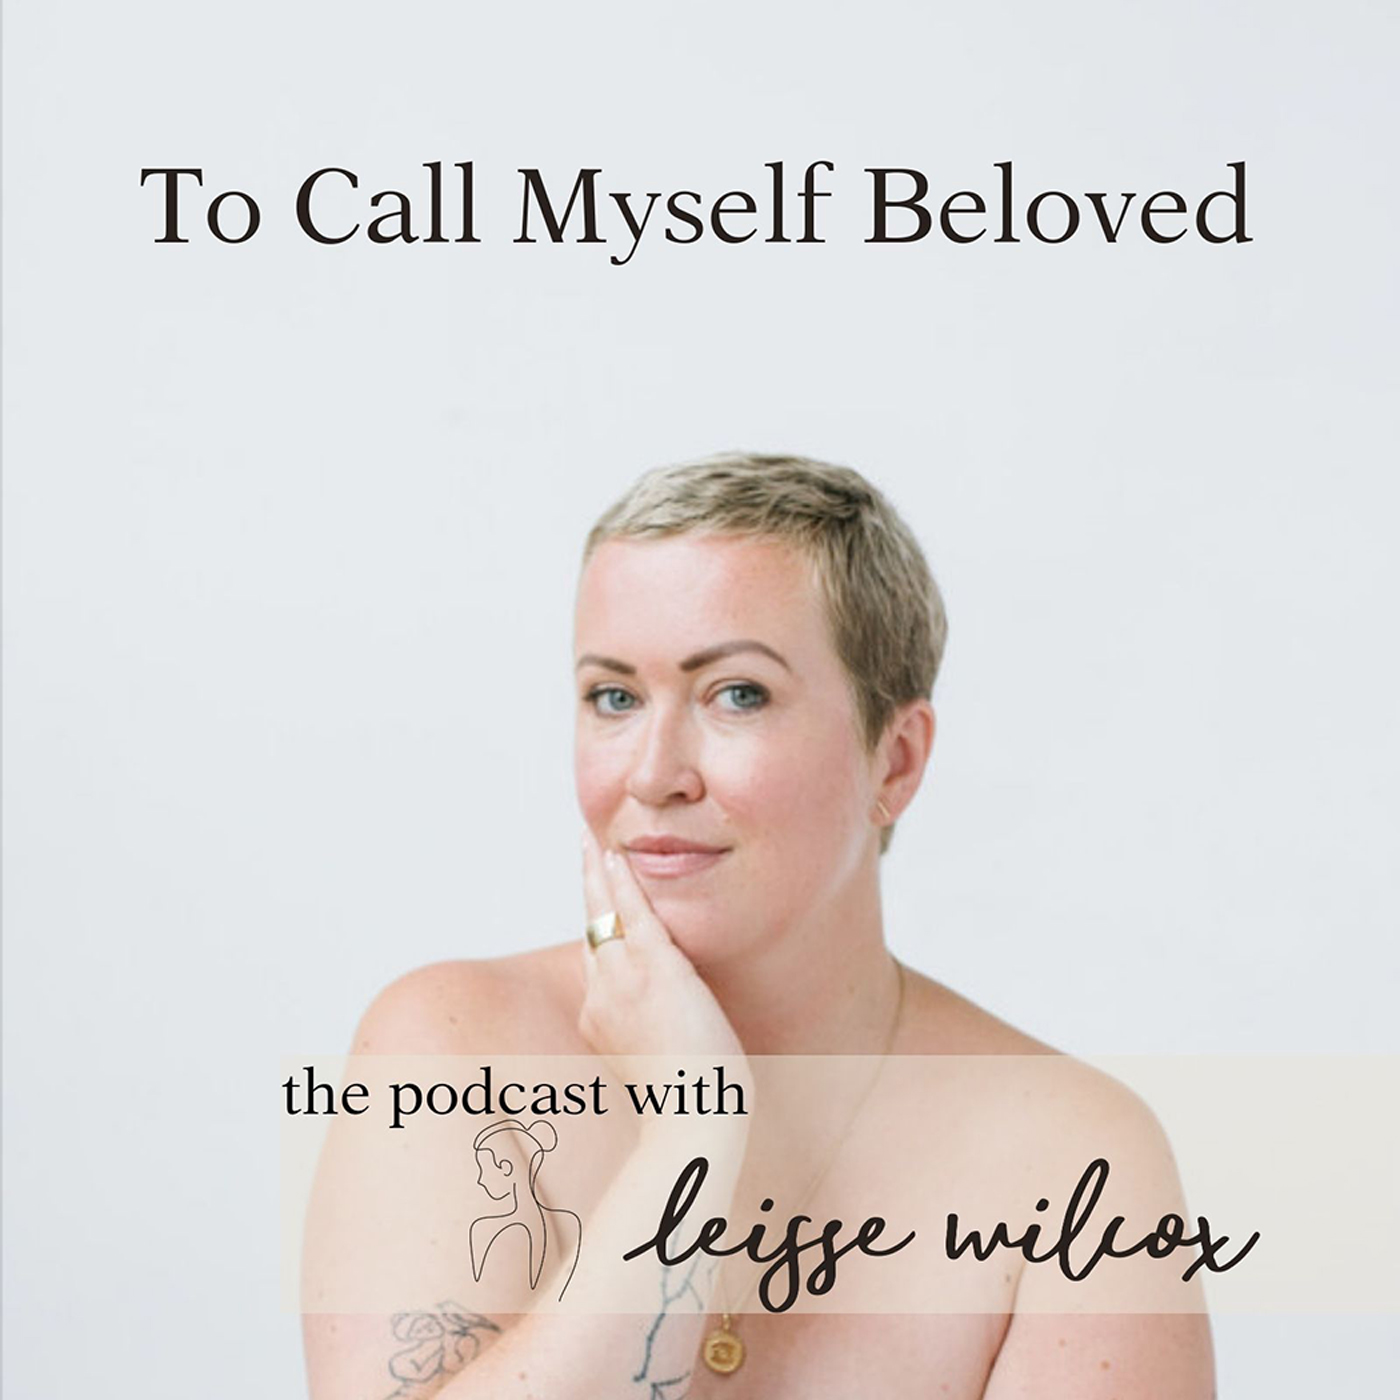 To Call Myself Beloved: the Podcast With Leisse Wilcox